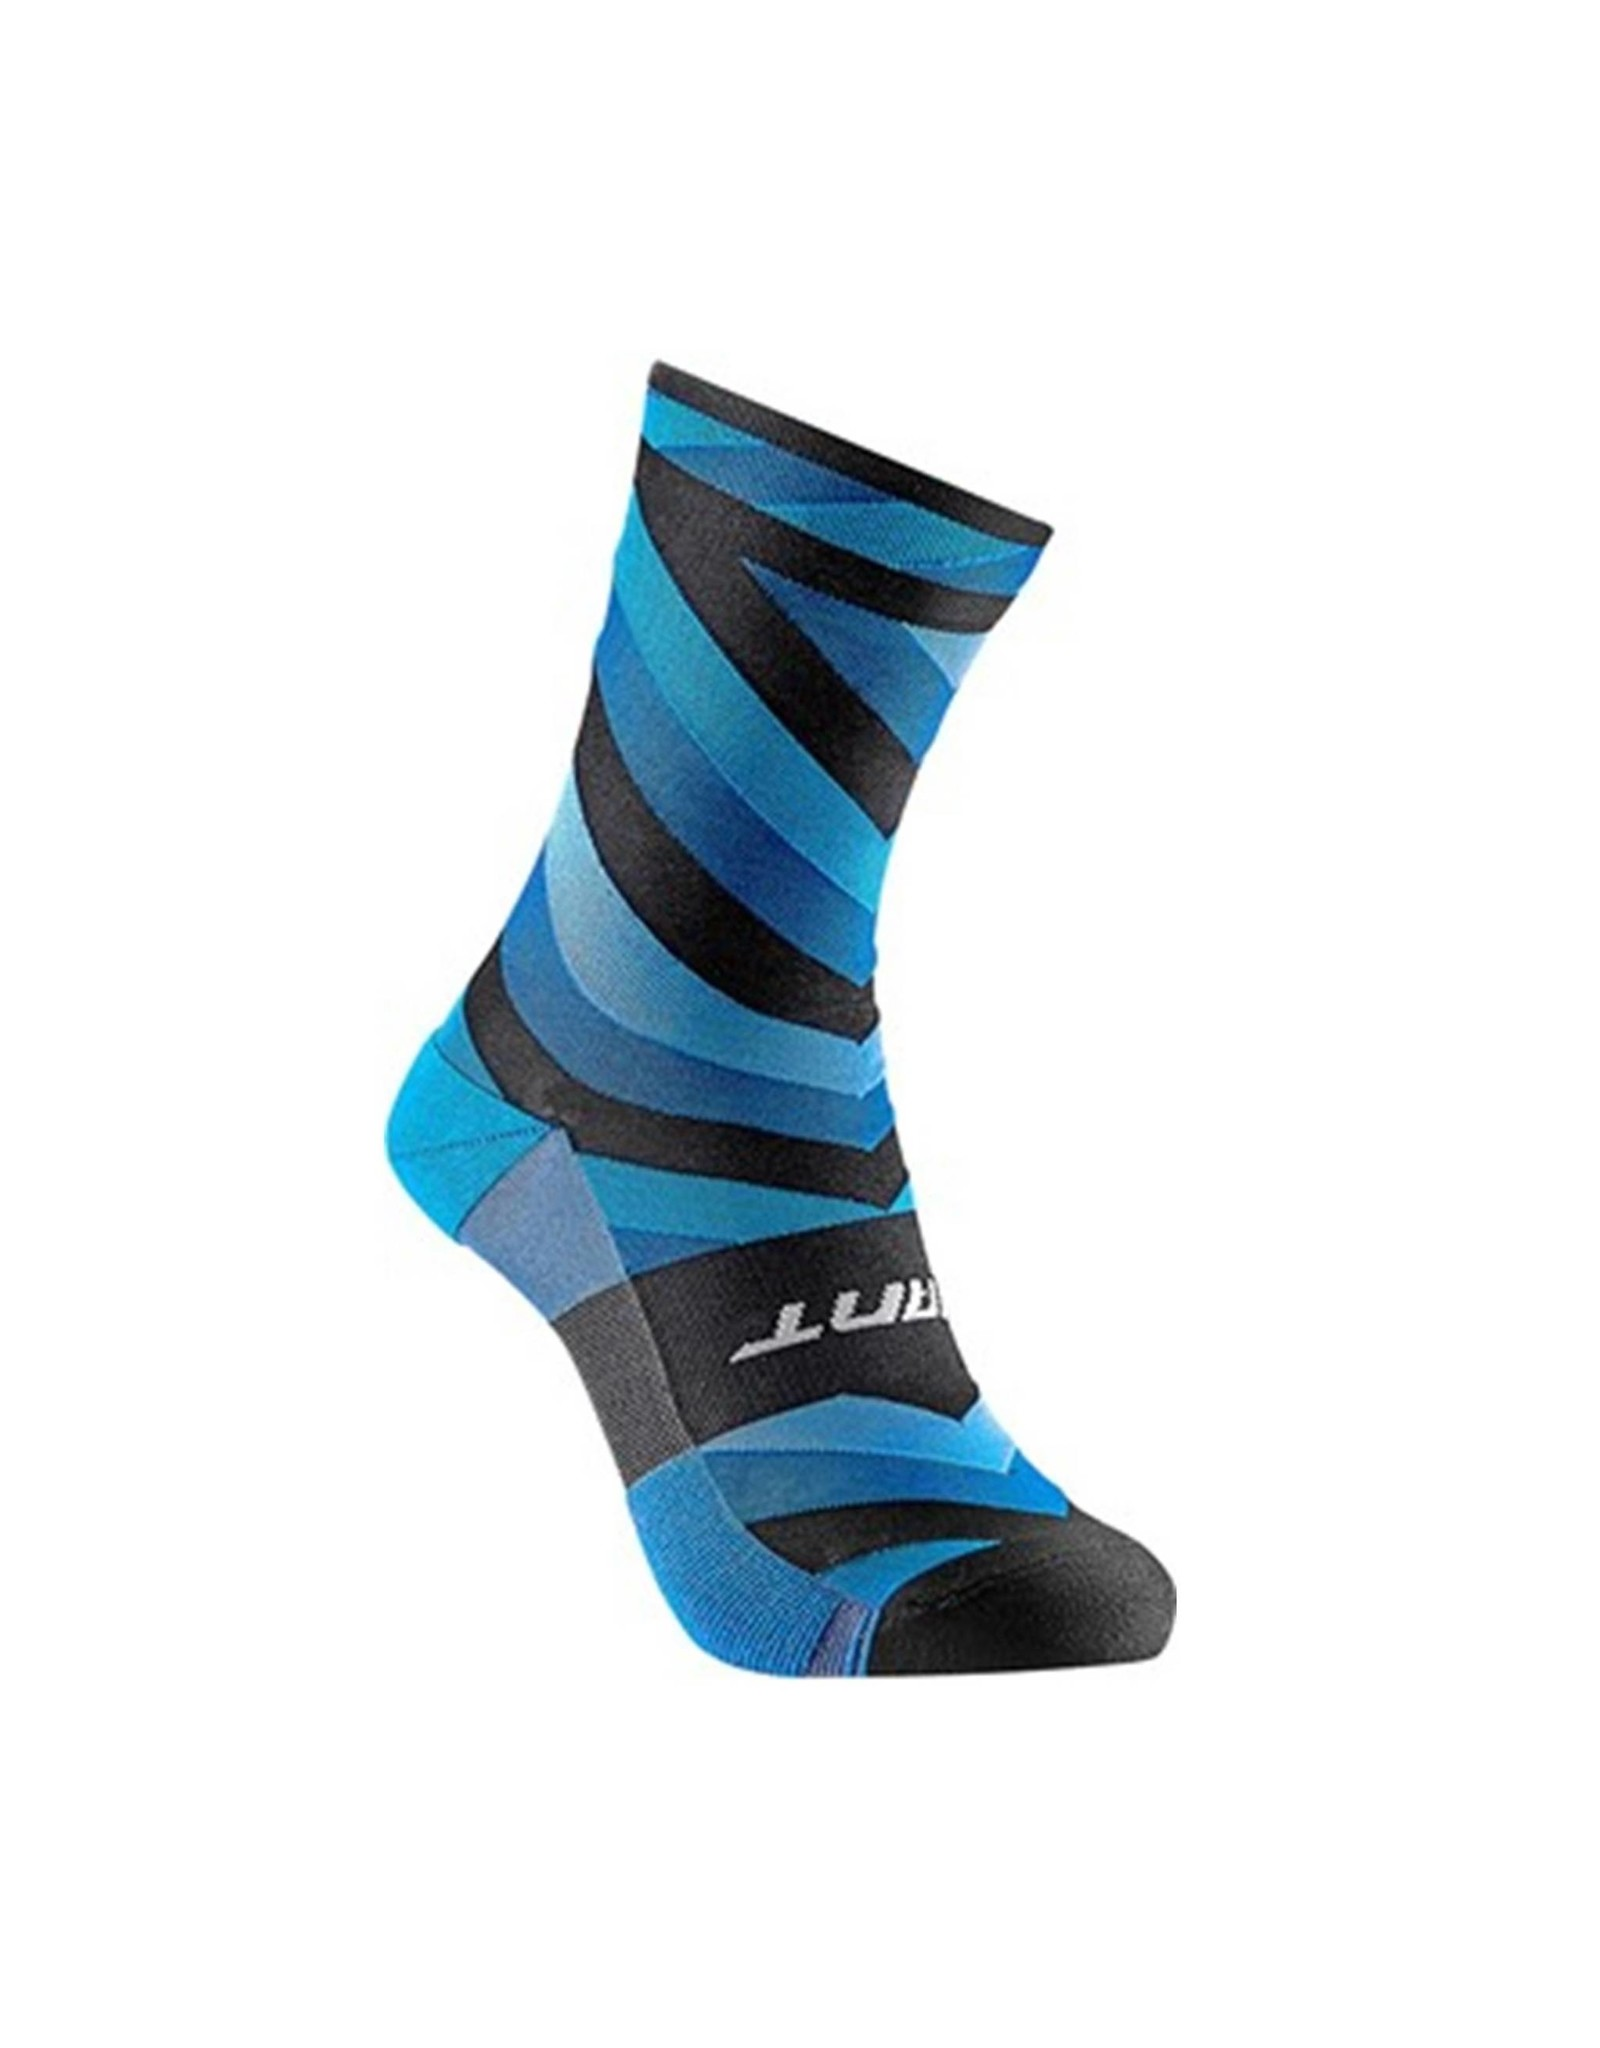 GIANT Giant Elevate Cycling Sock Black/Blue M